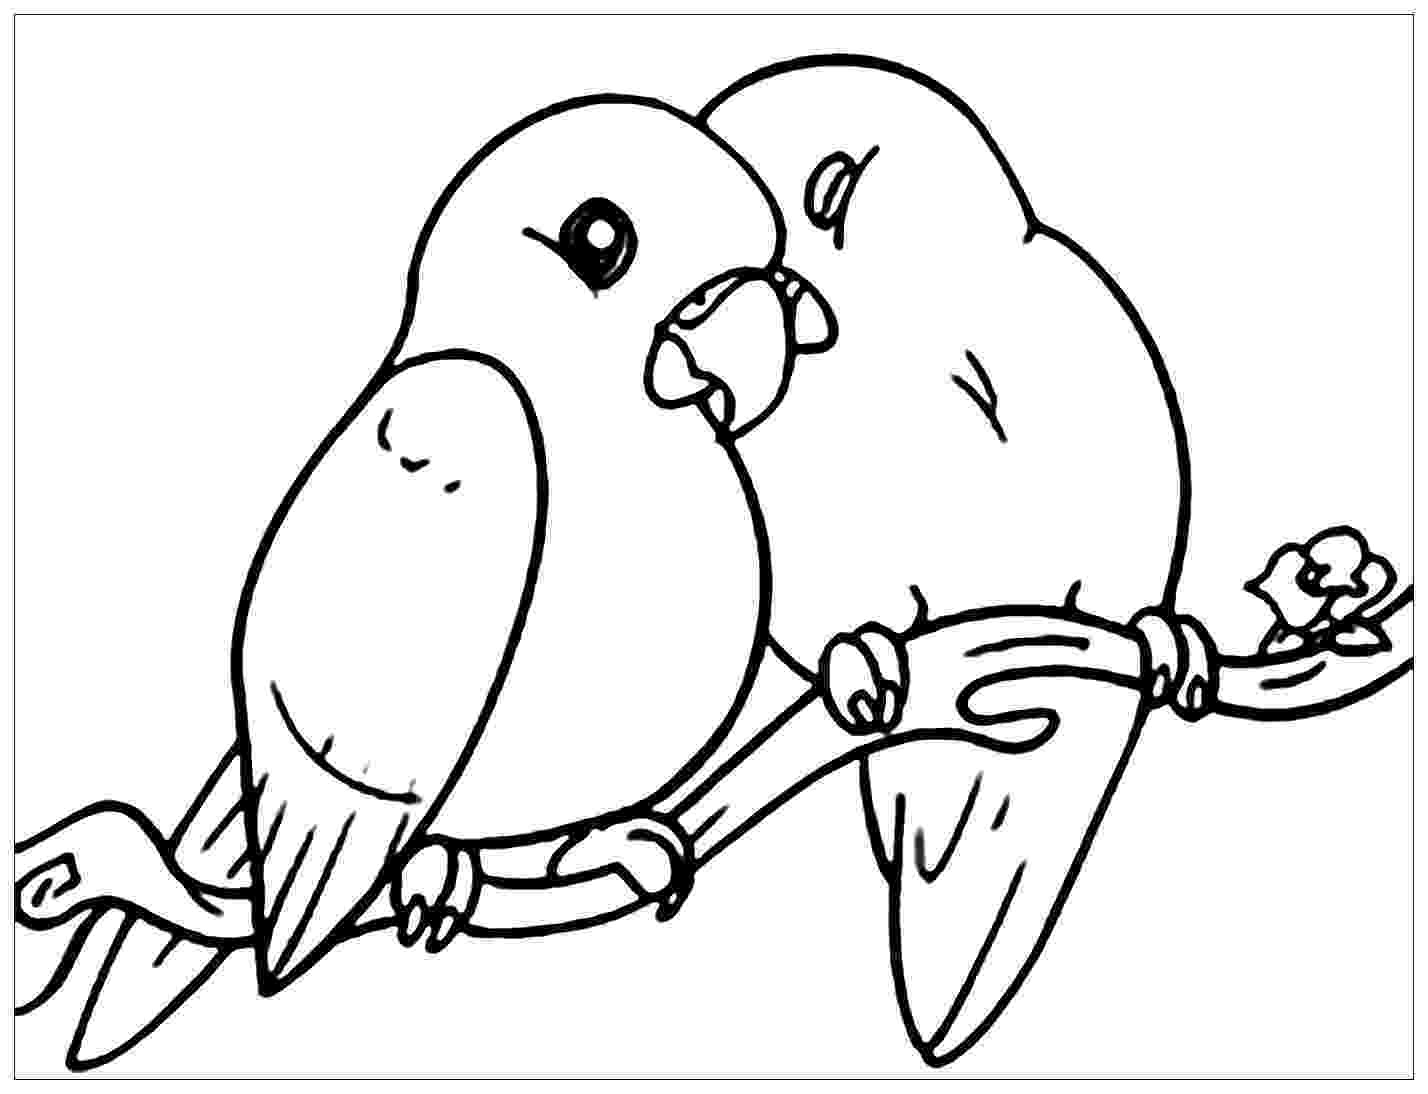 parrot pictures for kids to color beautiful bird parrot coloring colour drawing hd wallpaper pictures to for parrot color kids